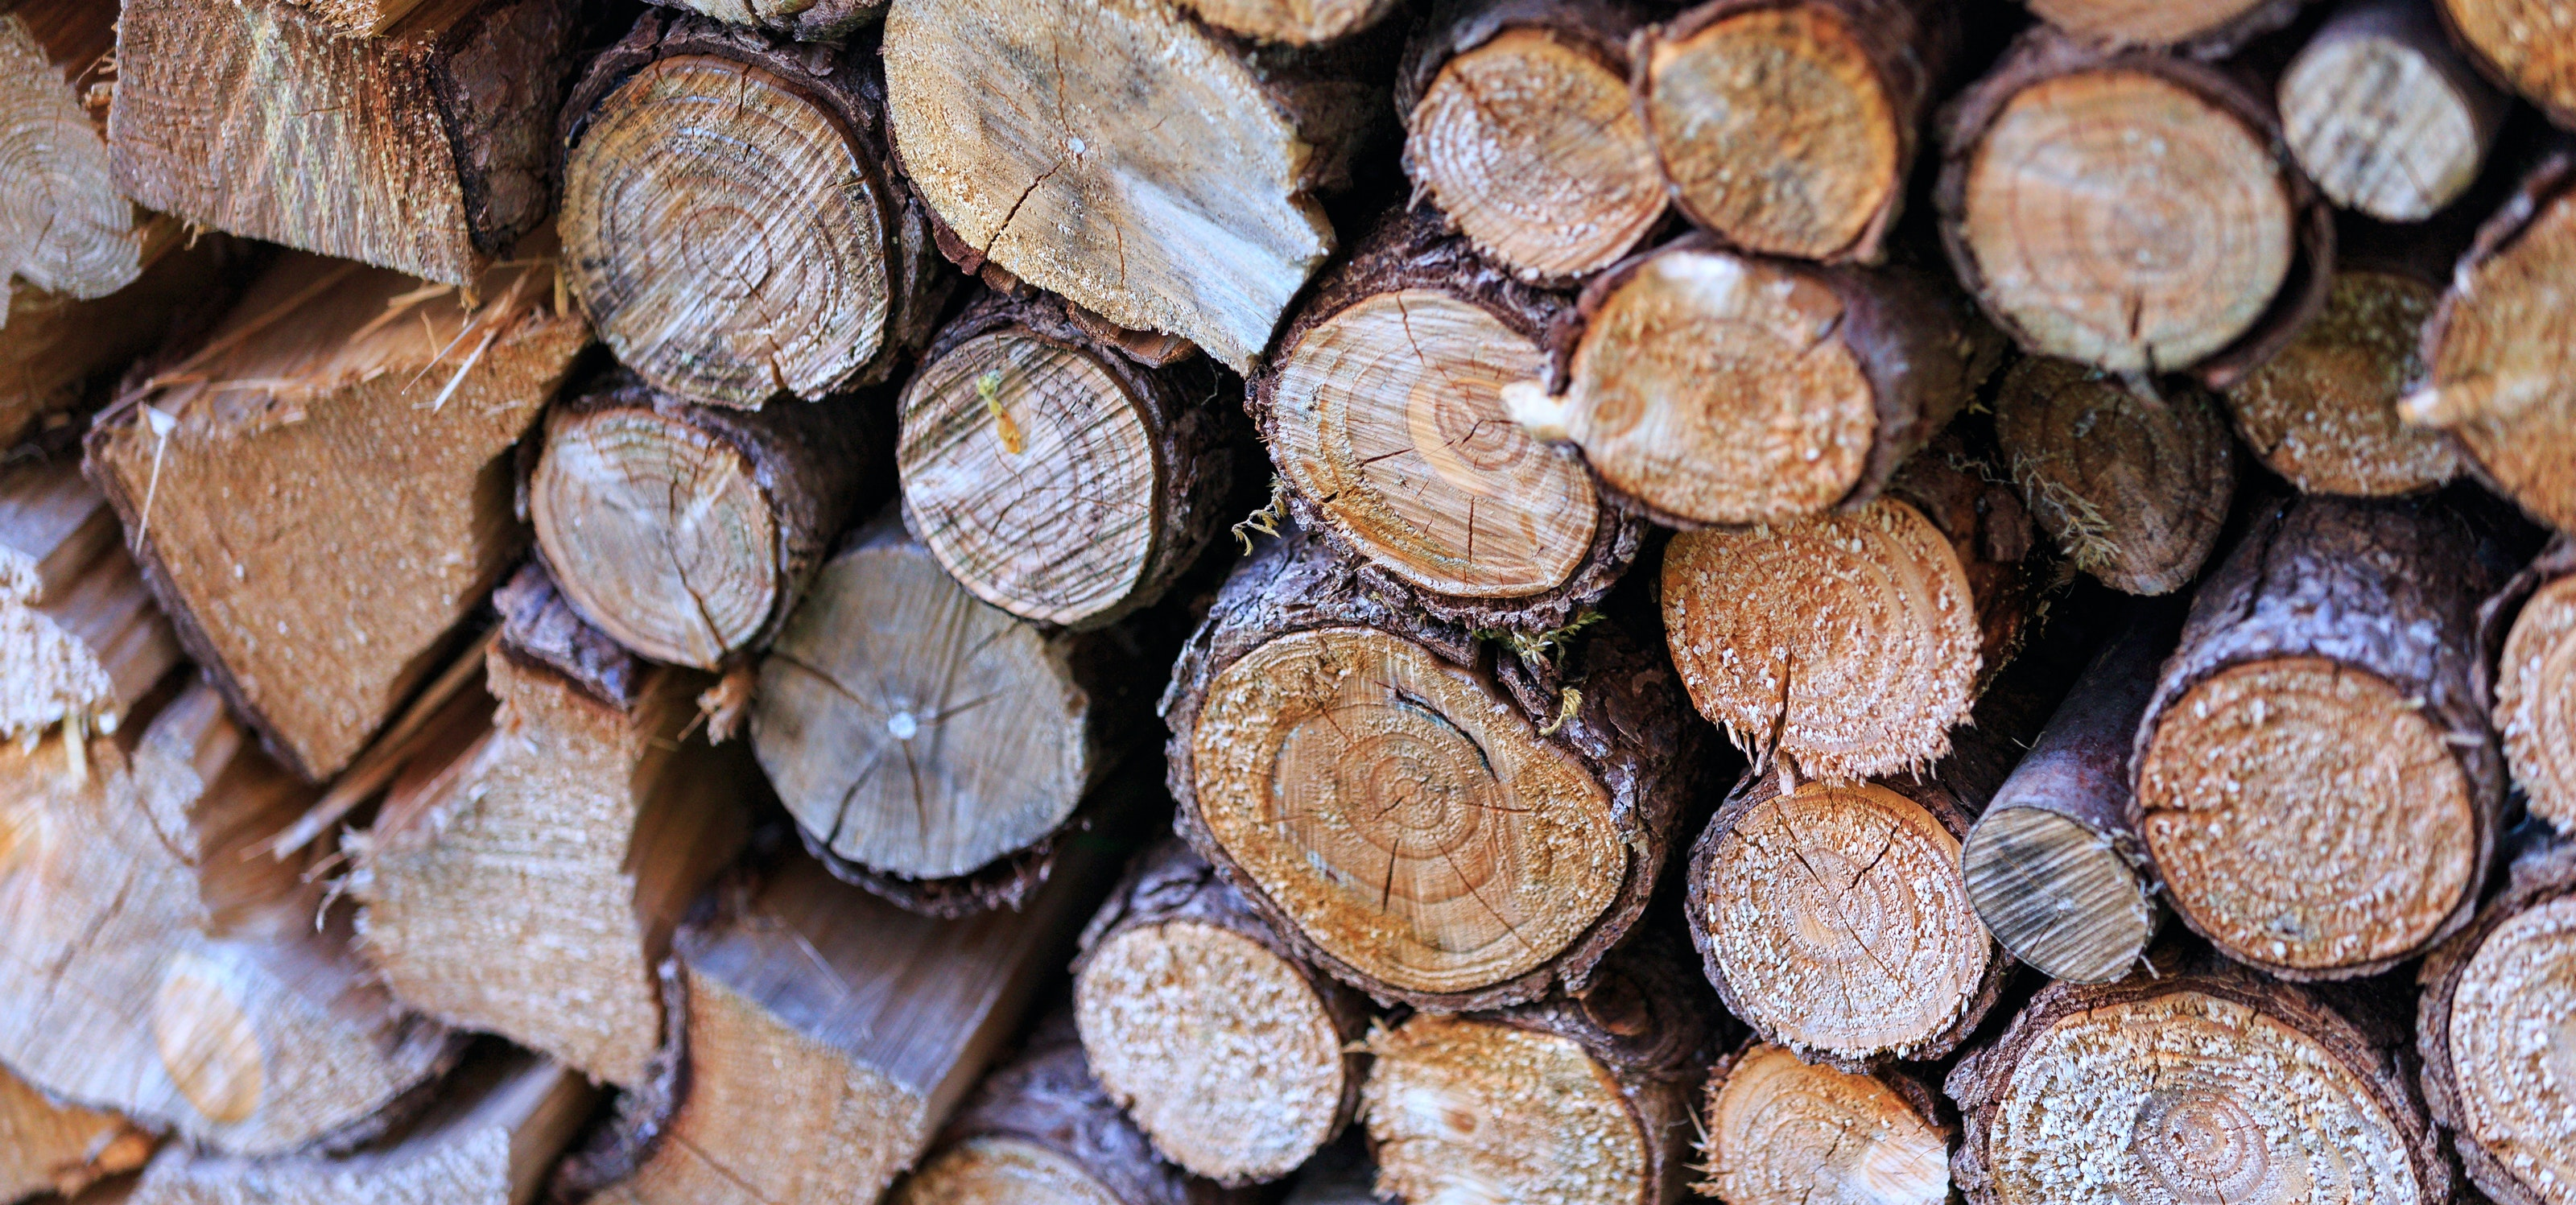 Close-up Photo of Brown Firewoods · Free Stock Photo